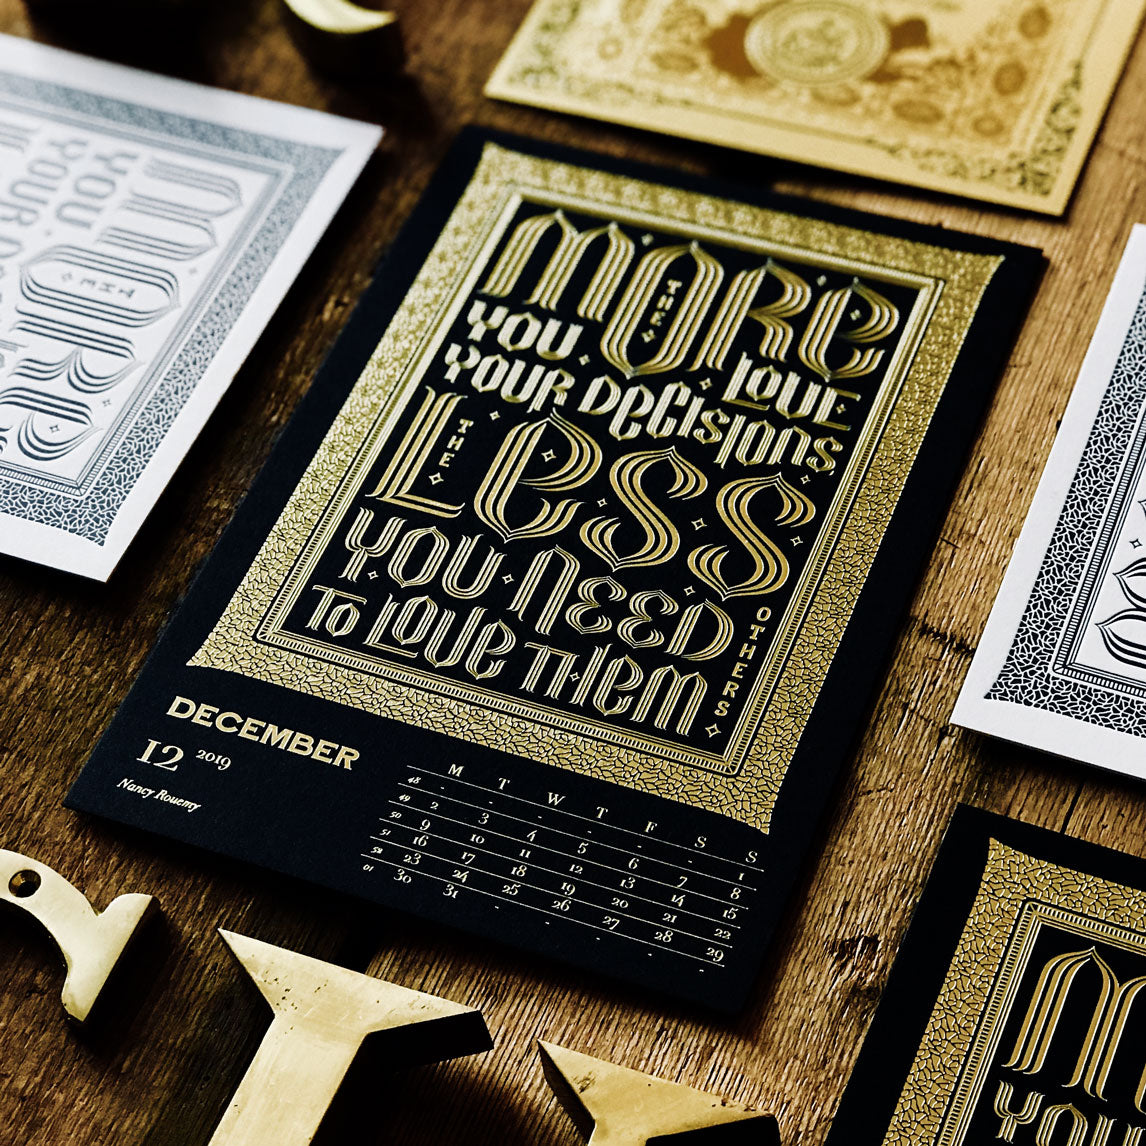 2019 letterpress calendar Artist's proof 12 - hot foil - MR CUP